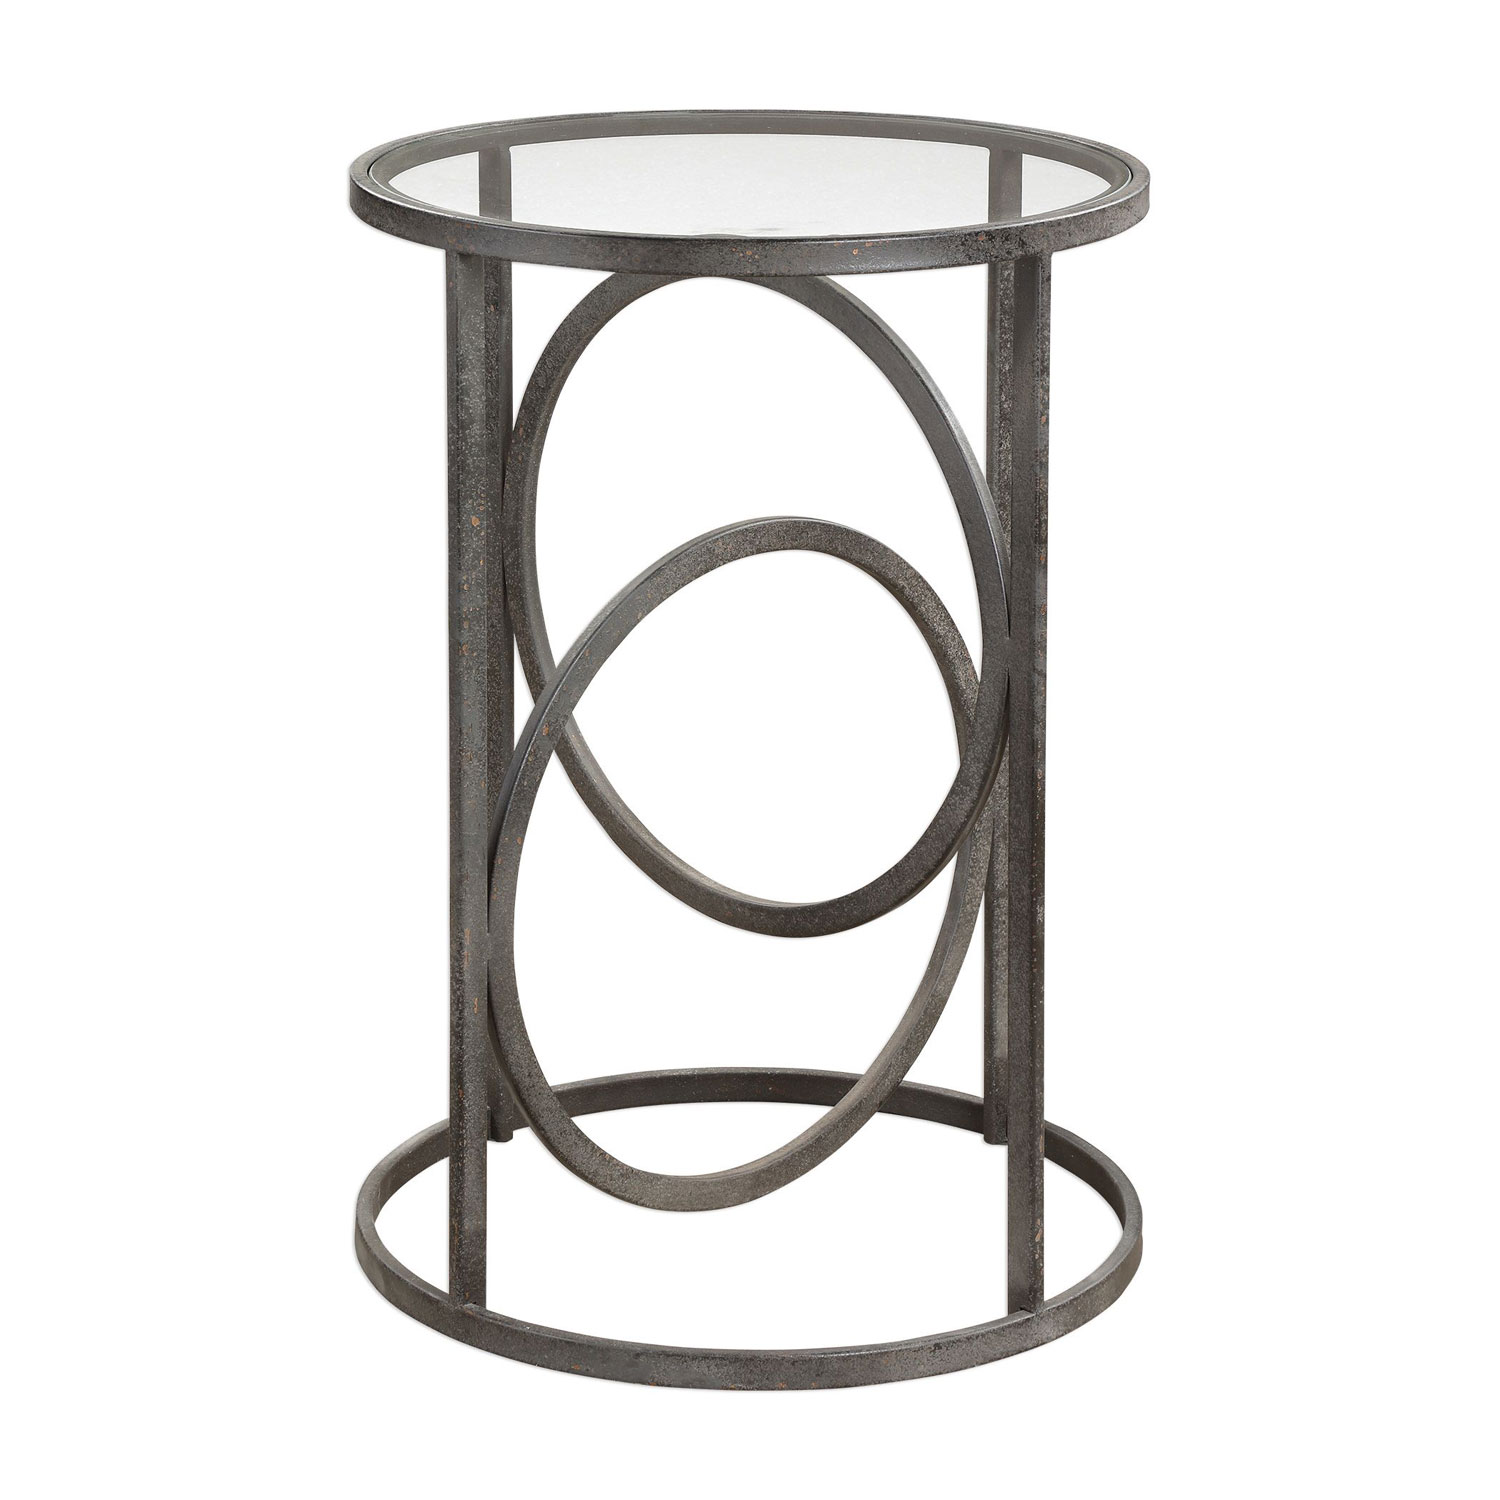 uttermost lucien iron accent table bellacor metal outdoor hover zoom small wine console with shelves corner end storage glass coffee brass legs solid wood farmhouse contemporary